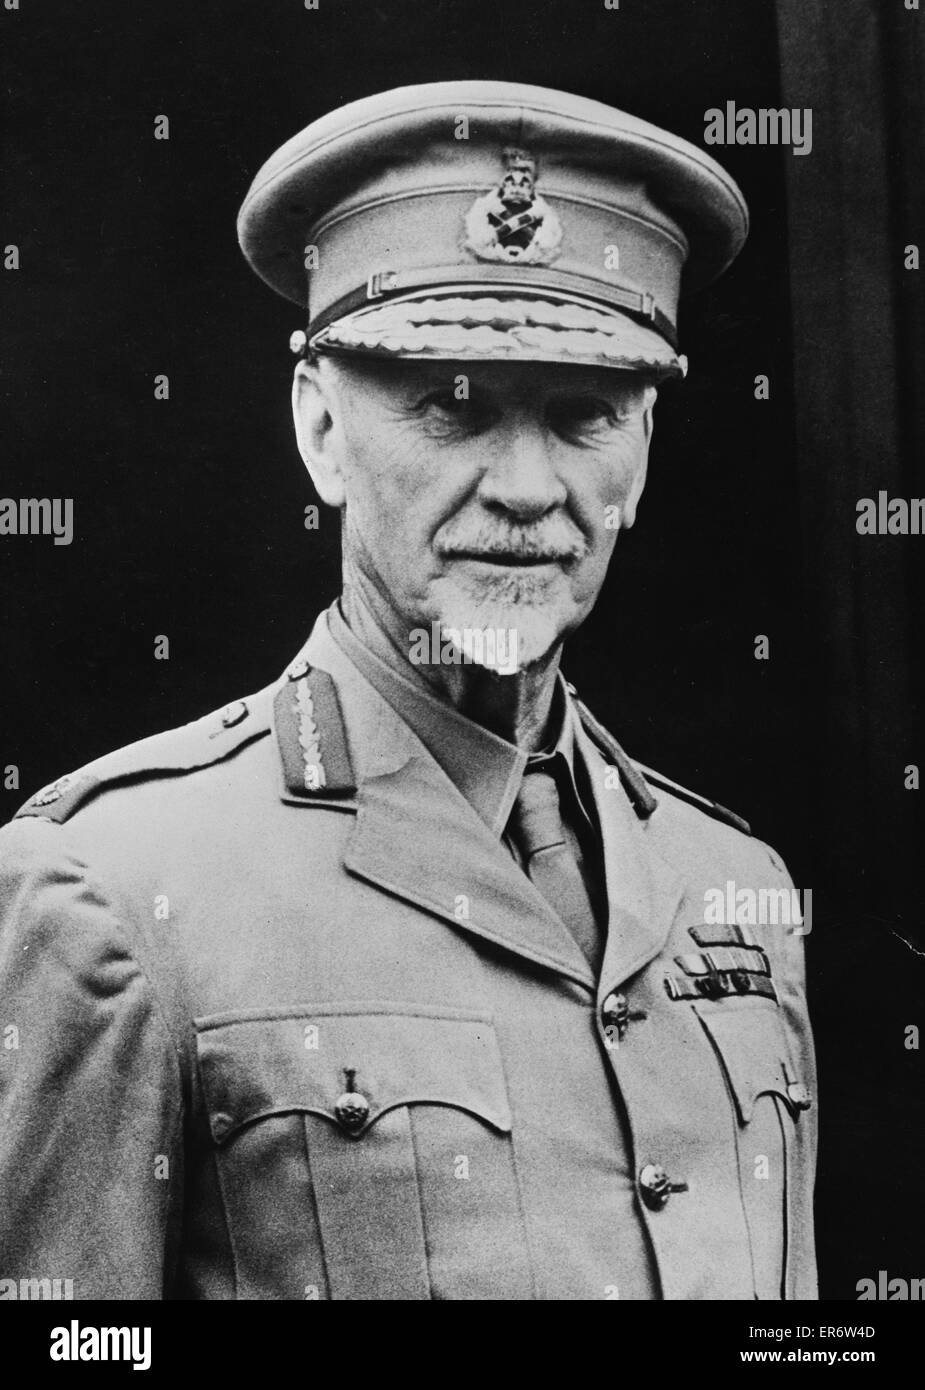 General Jan Smuts of the Union of South Africa. Date 1942?. - Stock Image